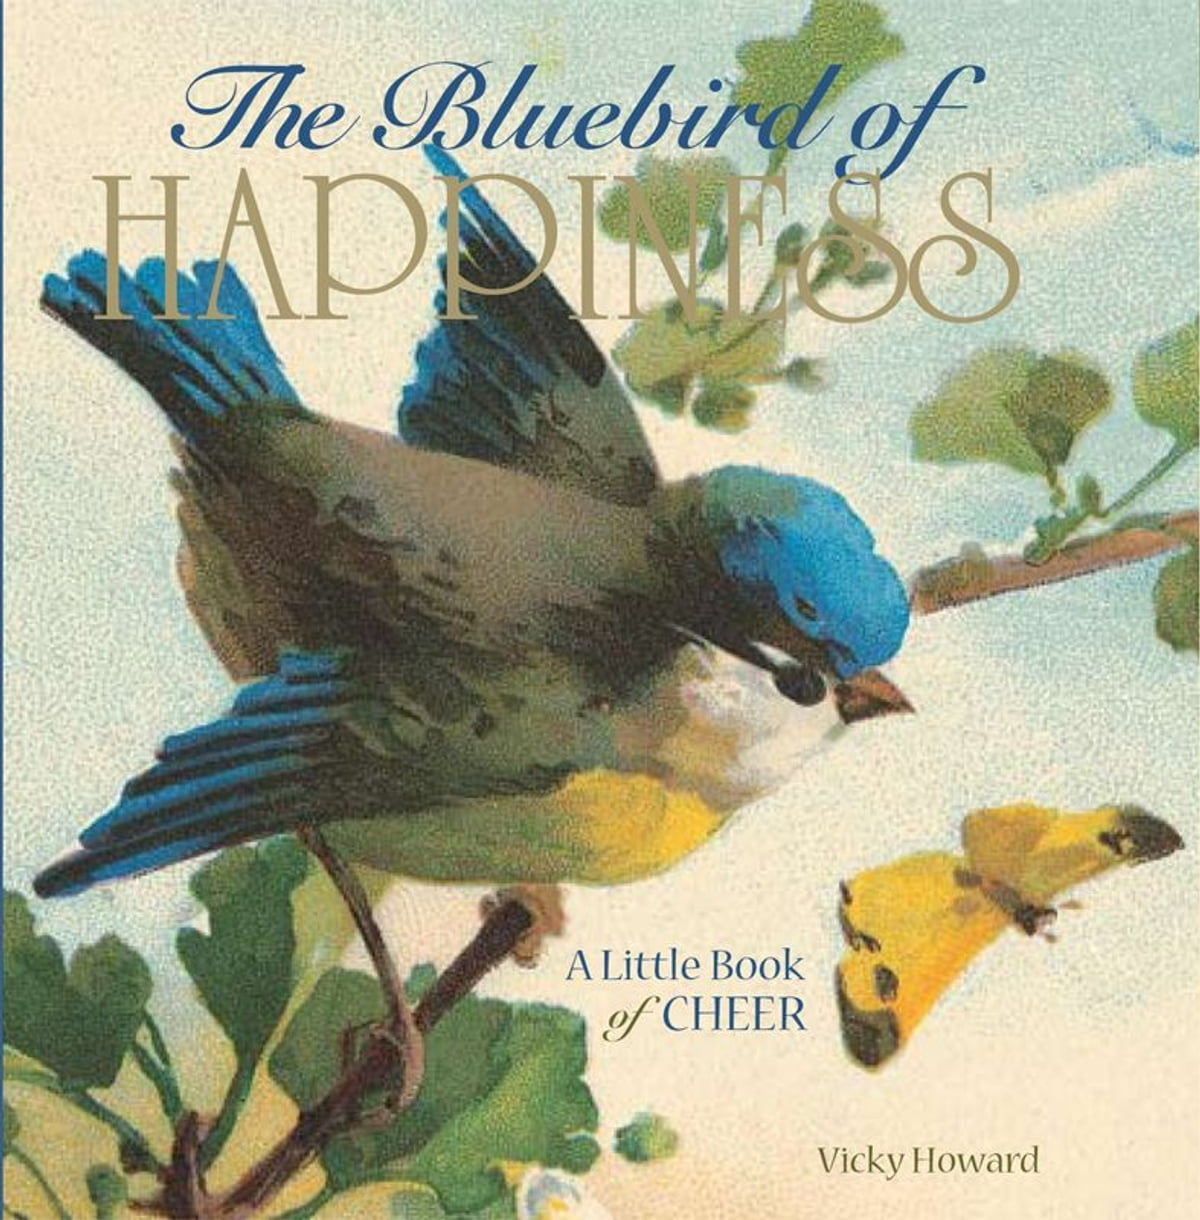 The bluebird of happiness a little book of cheer ebook by vicky the bluebird of happiness a little book of cheer ebook by vicky howard 9780740787454 rakuten kobo fandeluxe PDF